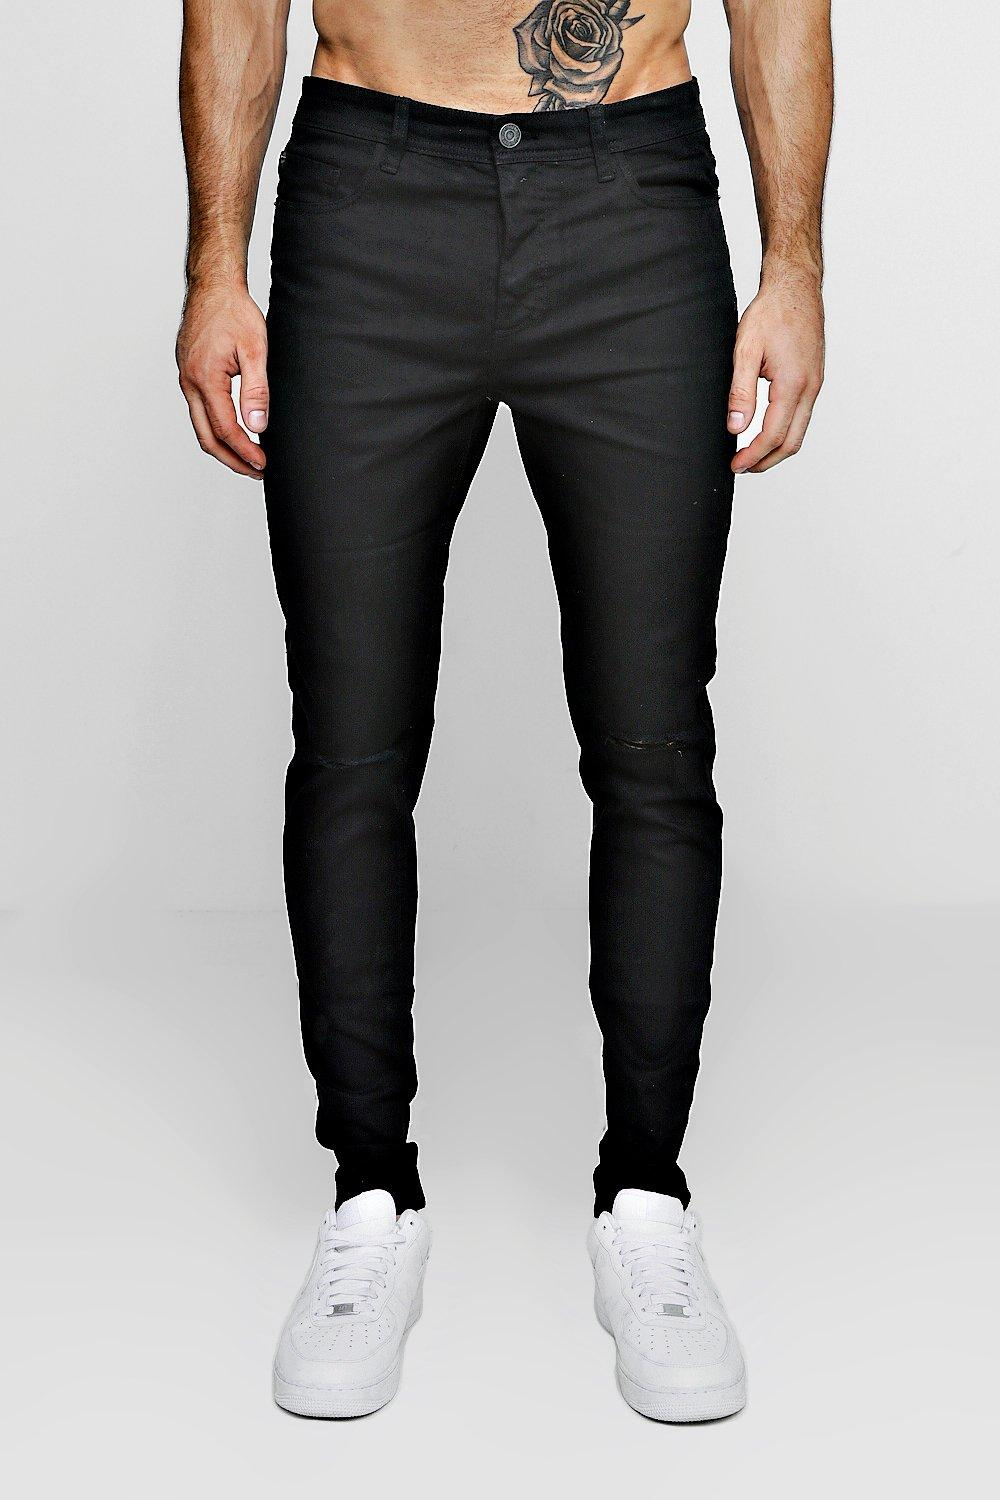 Black With Jeans Skinny Stretch black Ripped Knees 0q0F7rUw